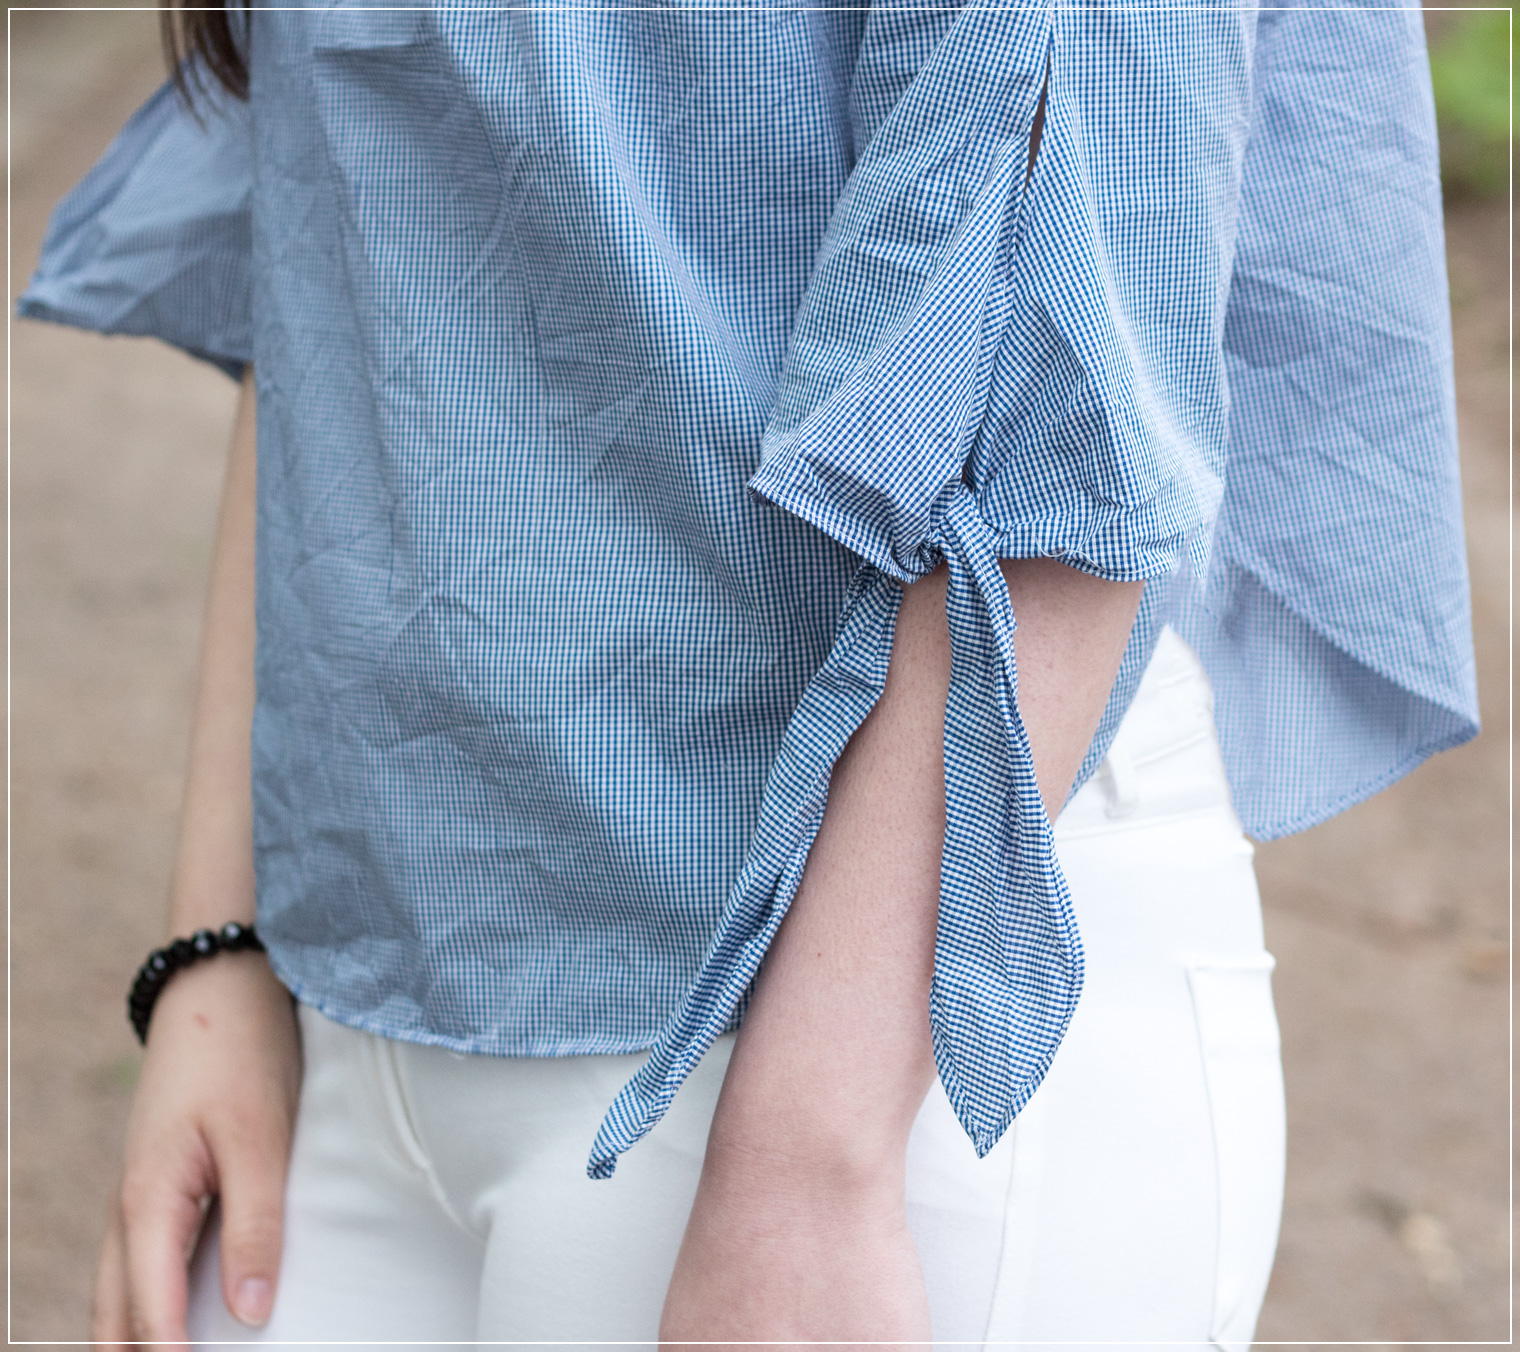 Off-Shoulder-Bluse, white Jeans, Longchamp Bag, Frühlingstrend